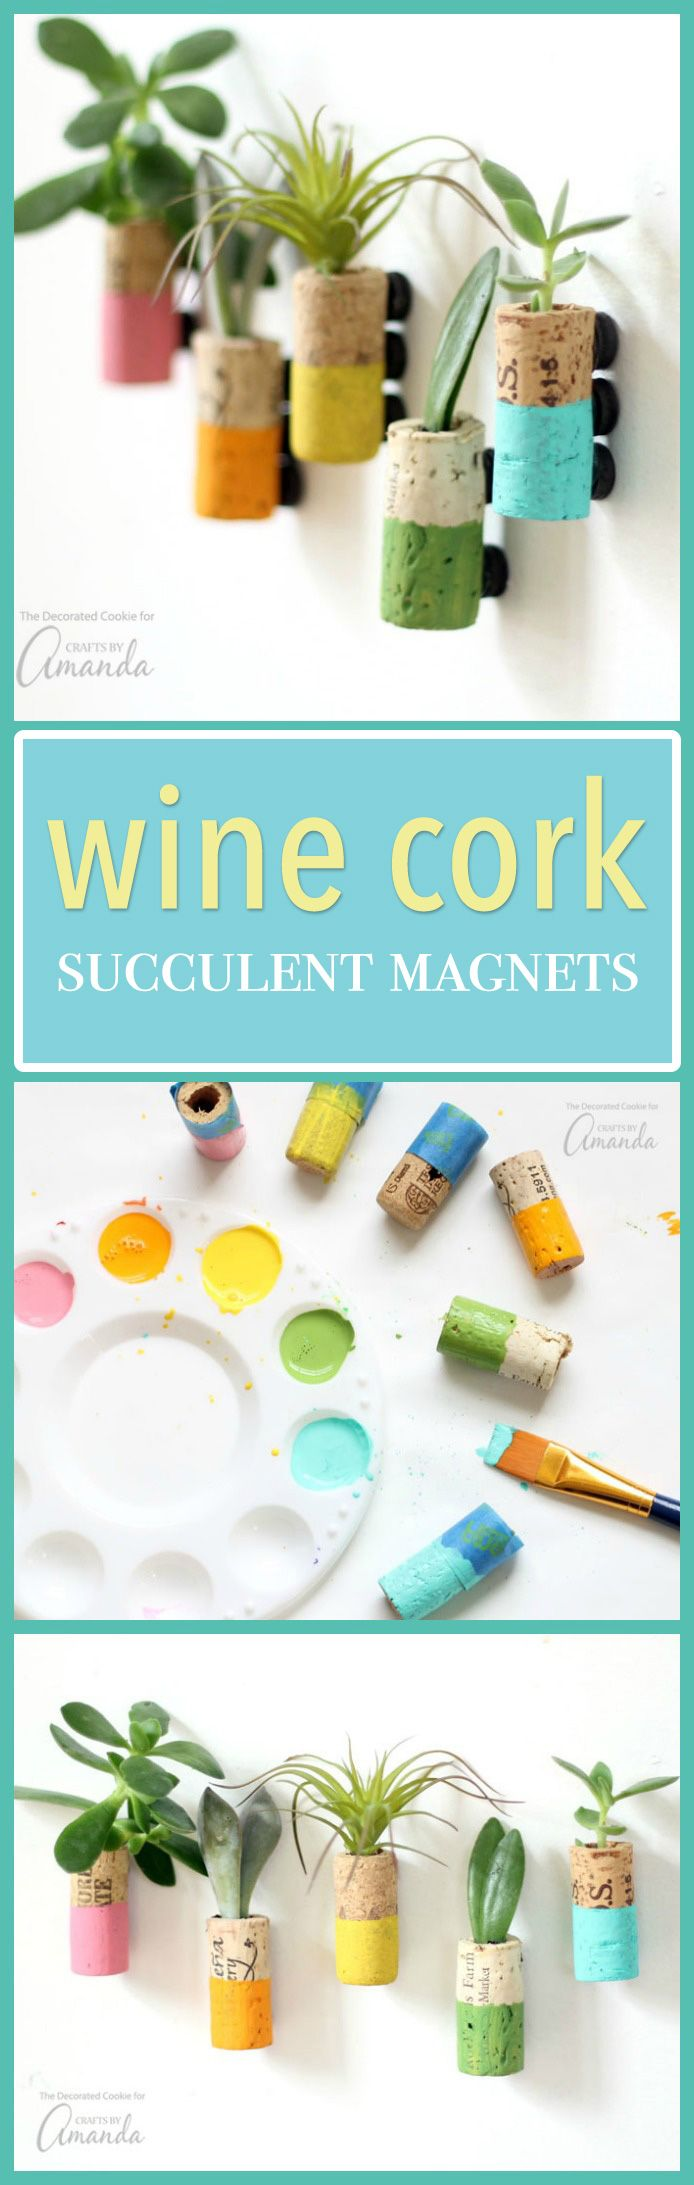 These wine cork succulent magnets are colorful magnets made from recycled wine corks. These pretty little staples will compliment your fridge perfectly!